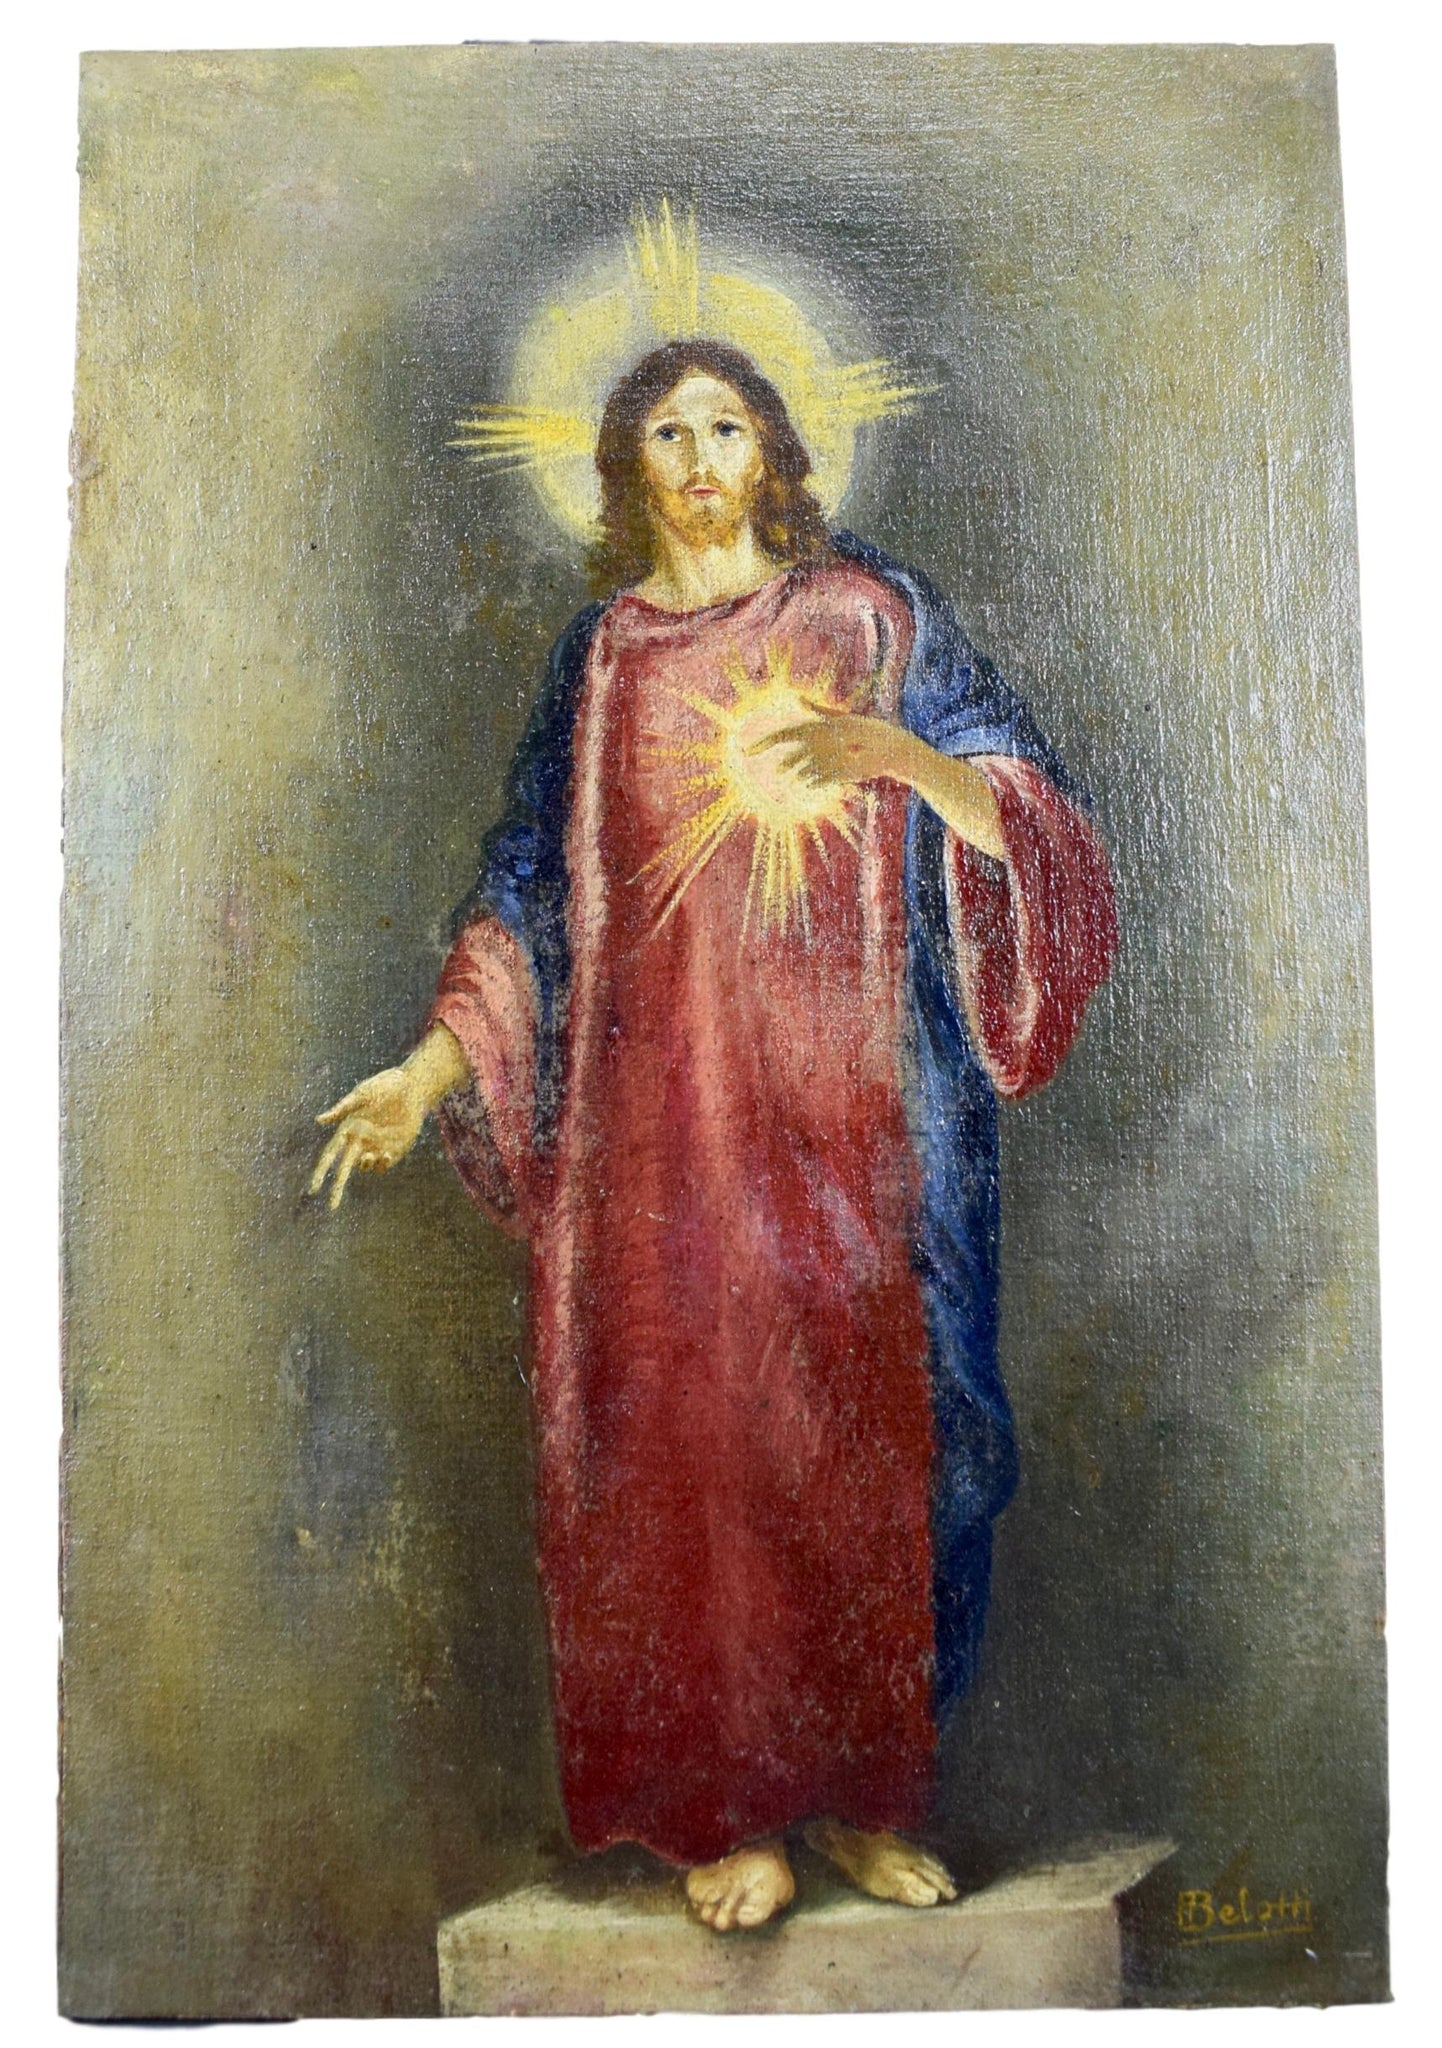 Sacred Heart of Jesus Painting - Charmantiques